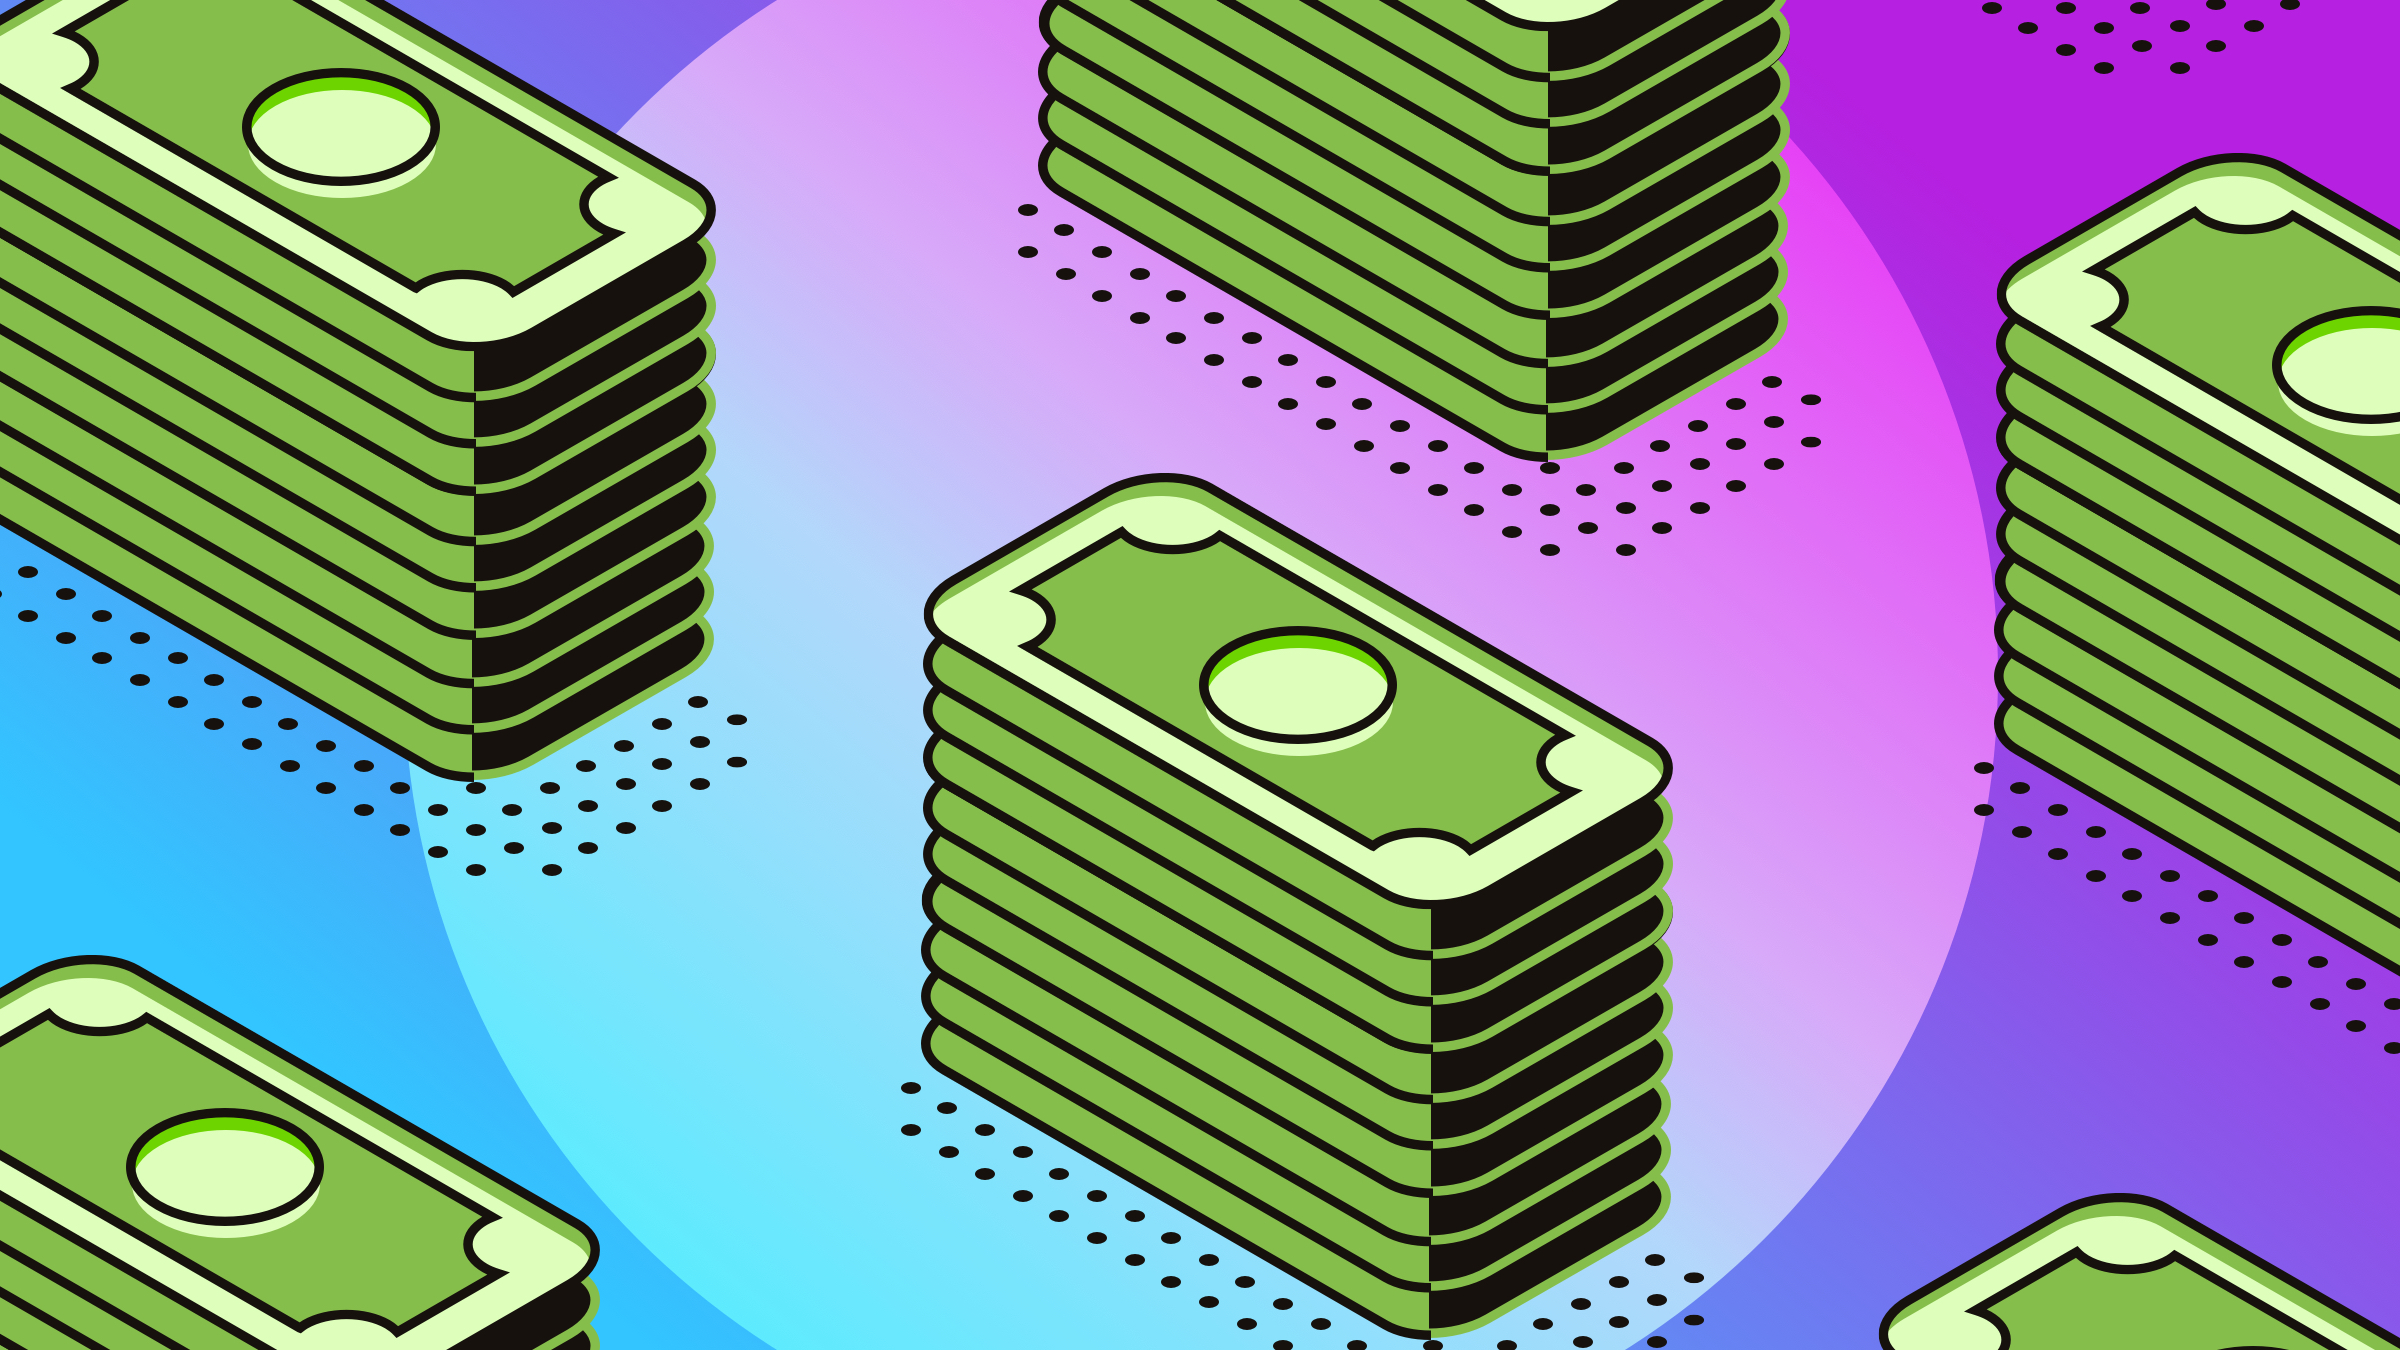 Financial connectivity provider Plaid has settled a $58 million class action lawsuit over claims that the fintech firm passed on personal banking data